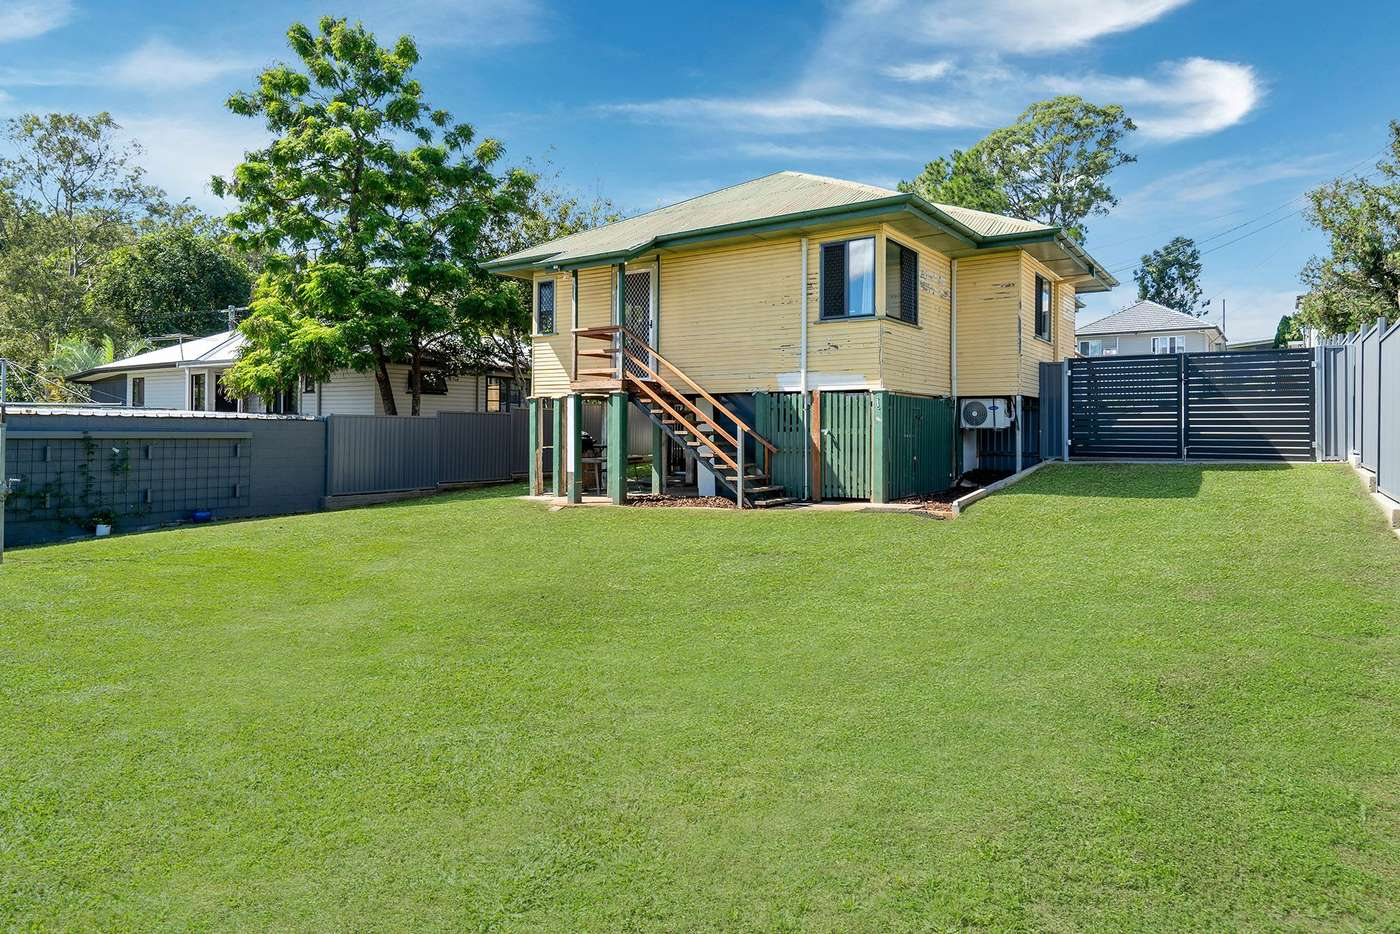 Main view of Homely house listing, 15 Camlet Street, Mount Gravatt East QLD 4122